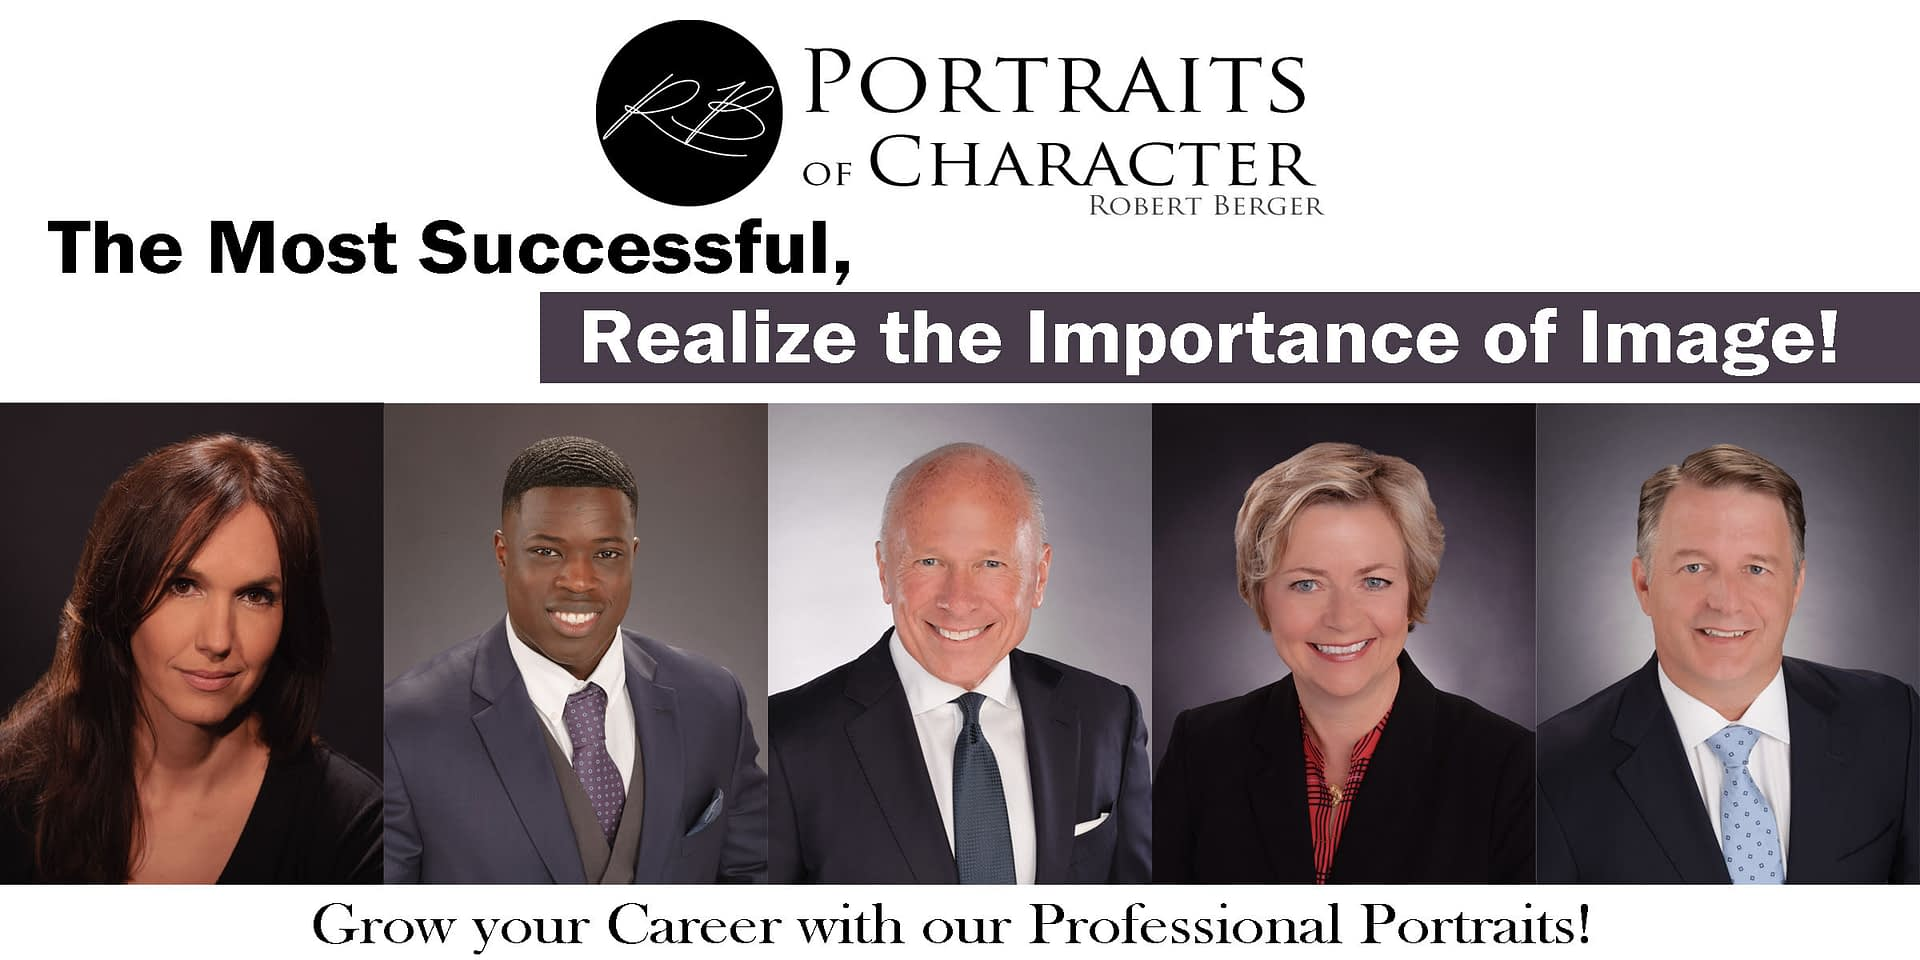 Houston Professional Headshots That  Captivate/ Portraits of Character by Robert Berger